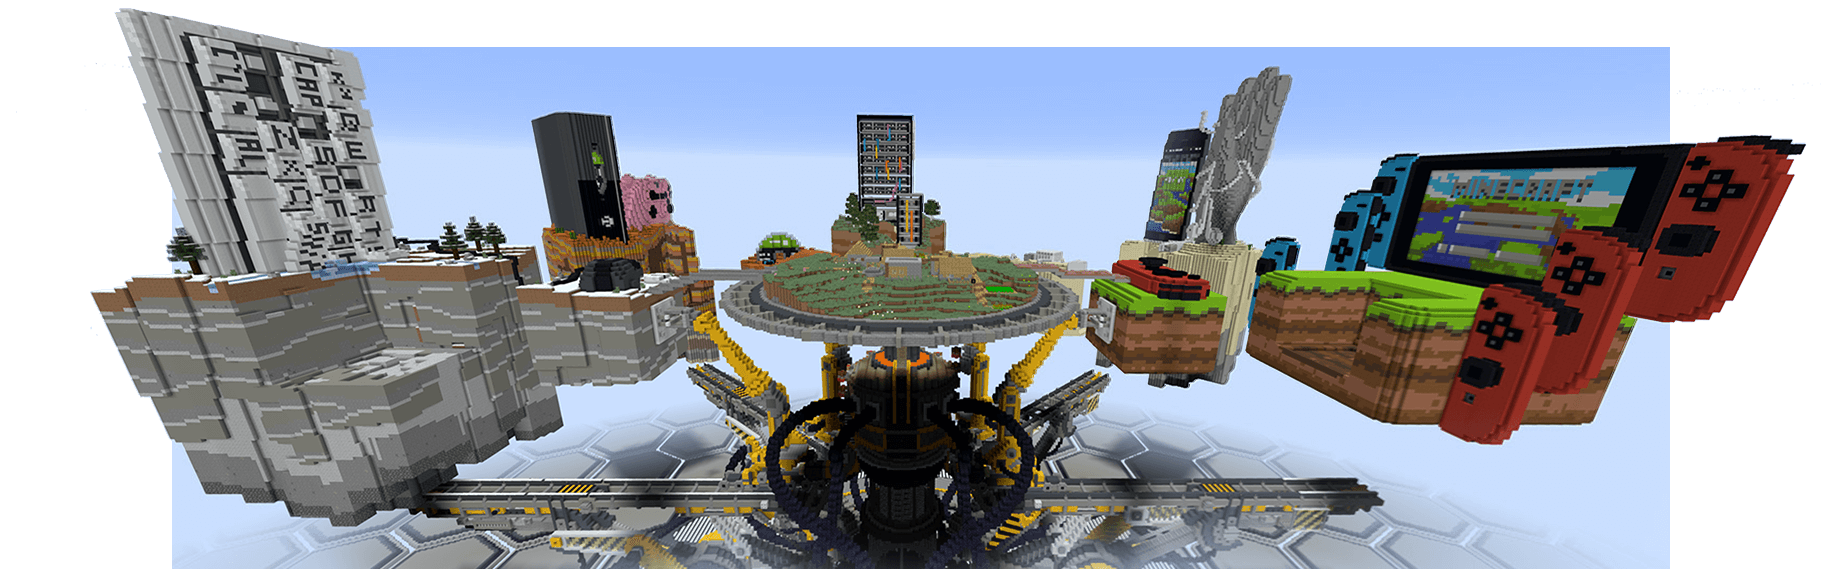 Minecraft togetherness machine, representing platforms where Minecraft is playable: PC, Xbox, mobile and Nintendo Switch.